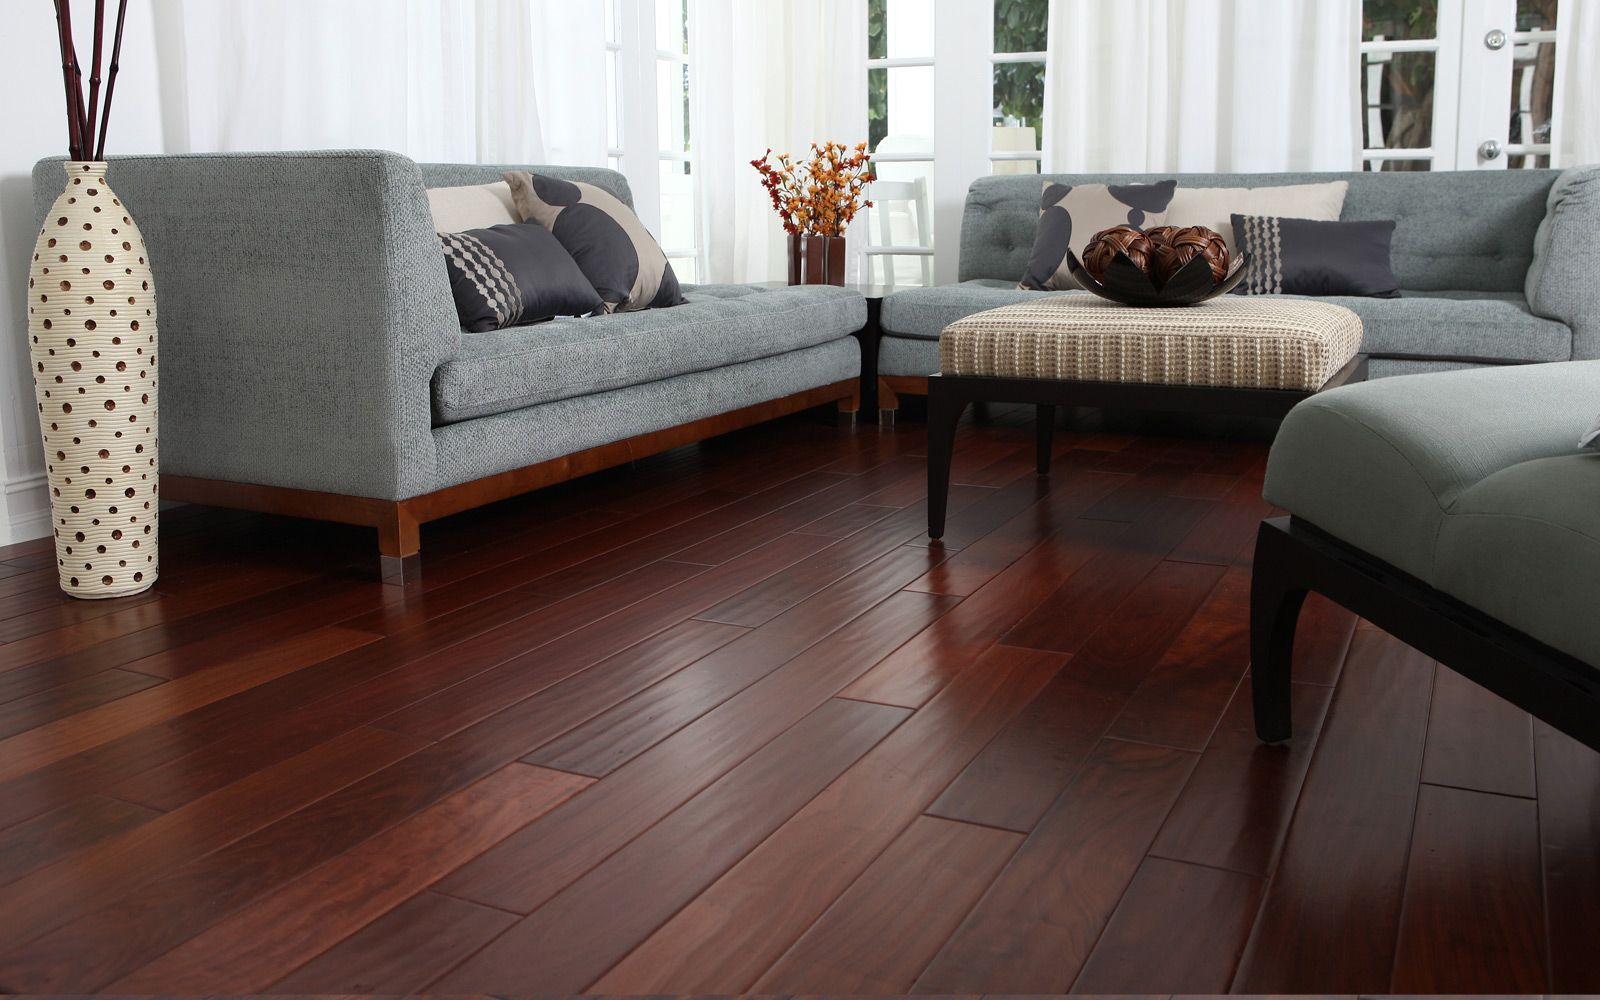 1000+ images about Wood floor on Pinterest - ^